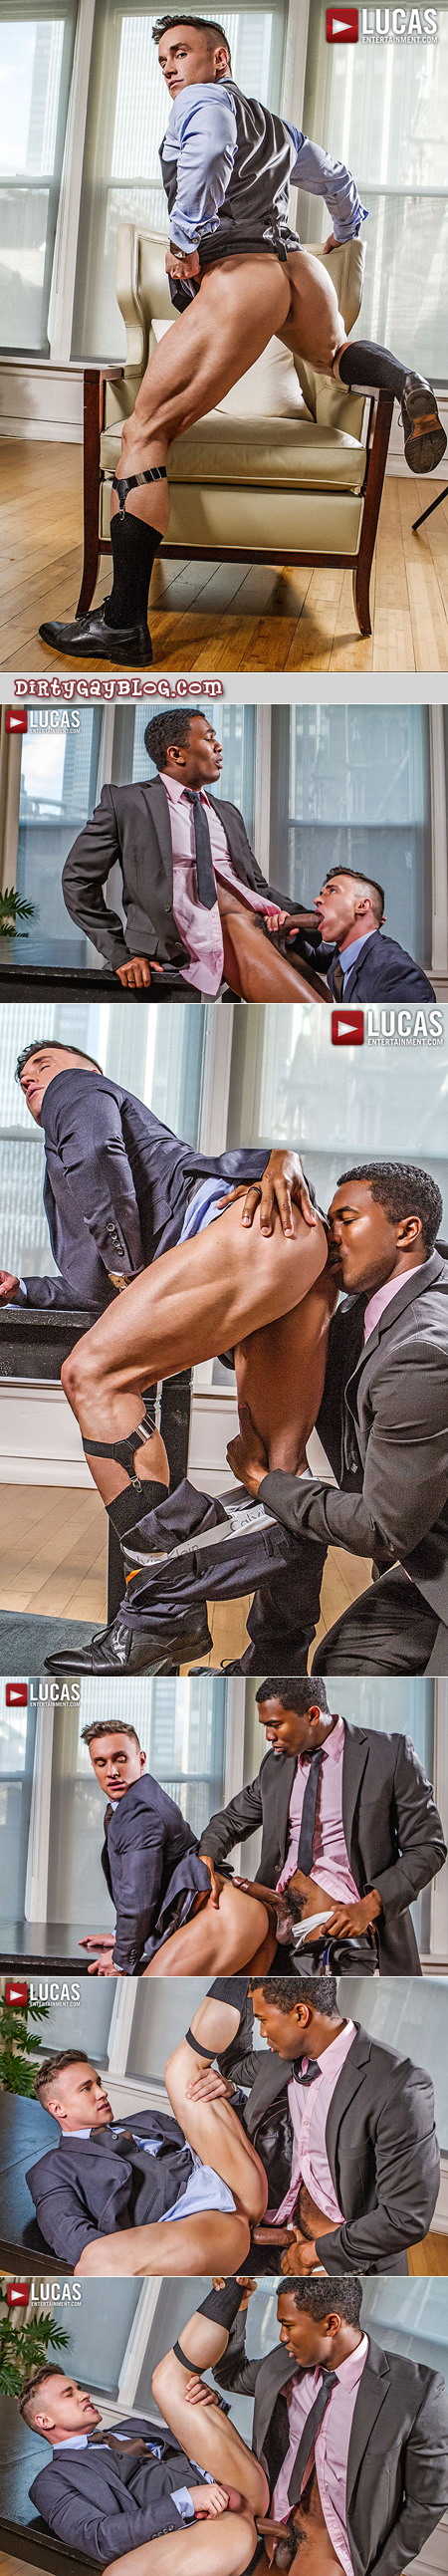 Russian muscle stud being fucked bareback by a co-worker in a suit with a monster big black cock.